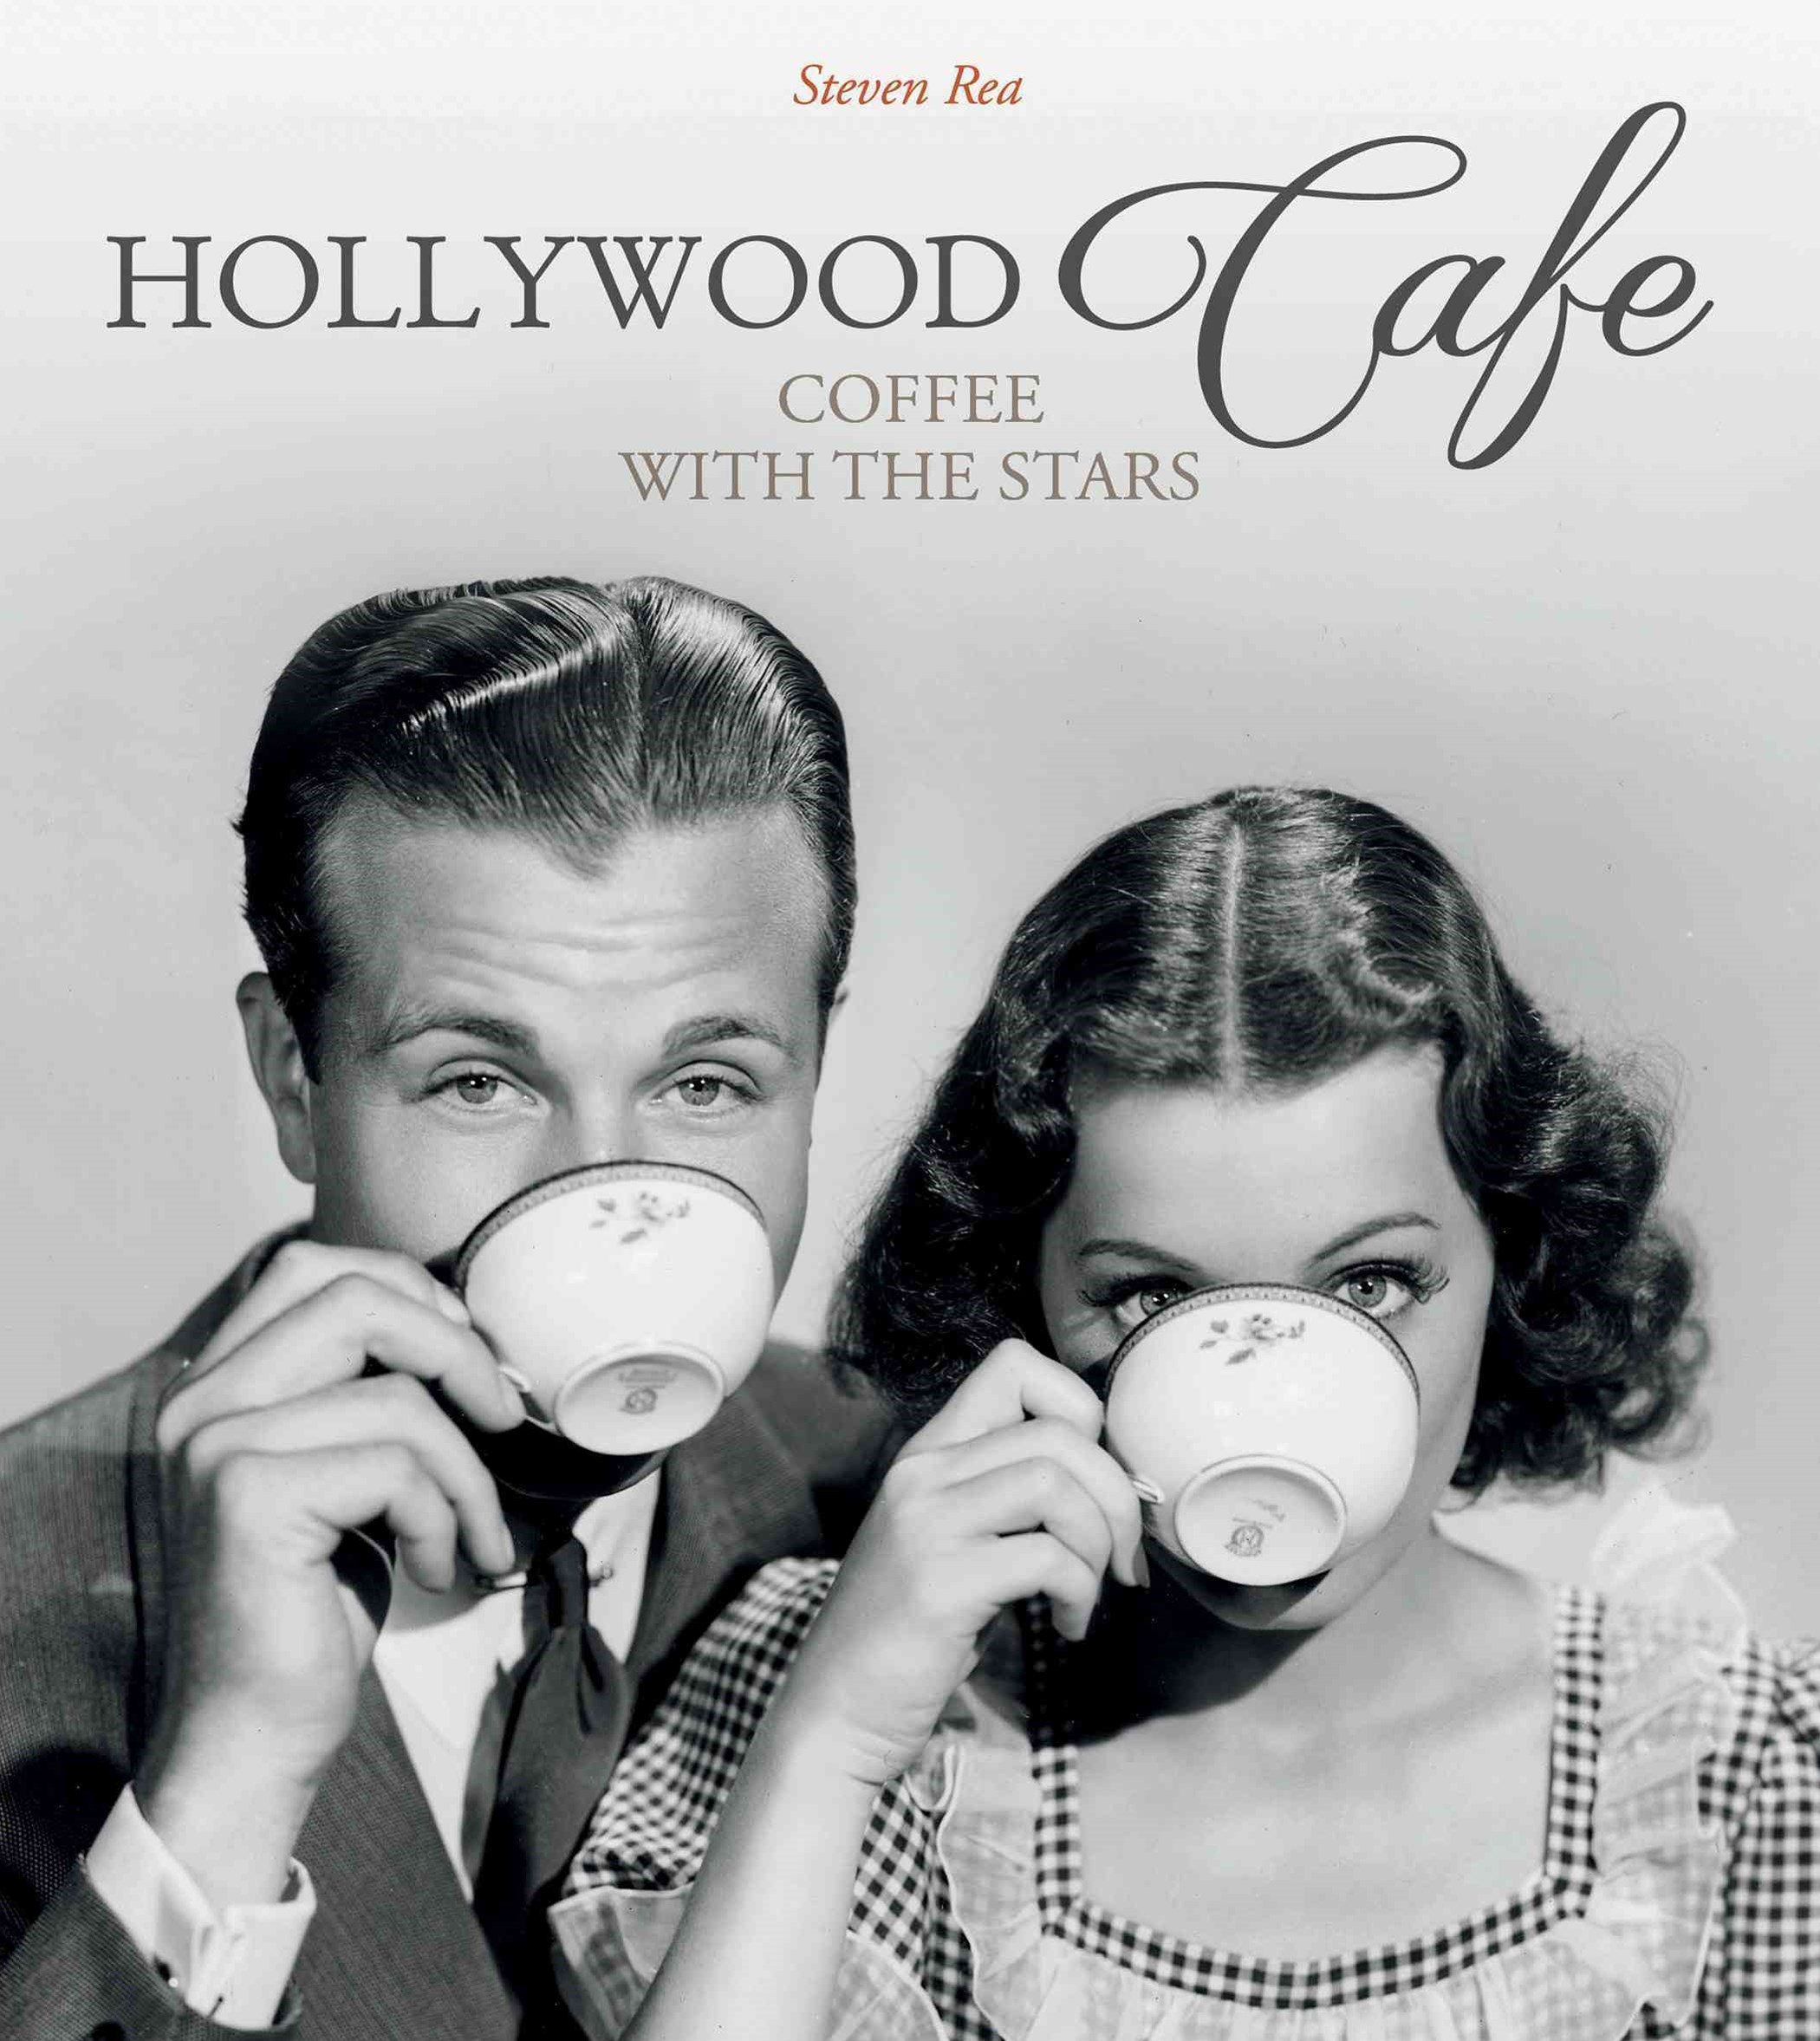 Hollywood Cafe: Coffee with the Stars